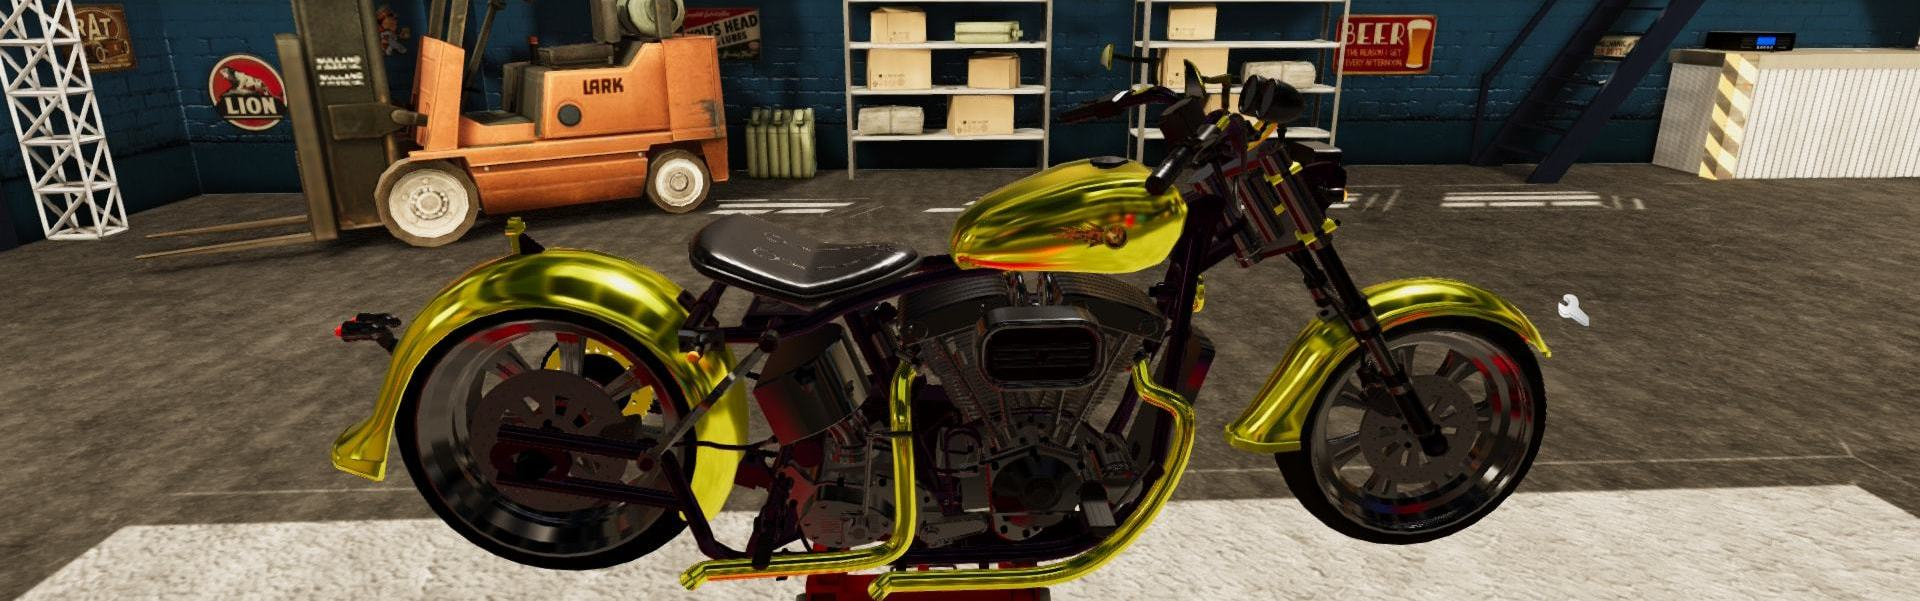 Motorbike Garage Mechanic Simulator Steam Key GLOBAL